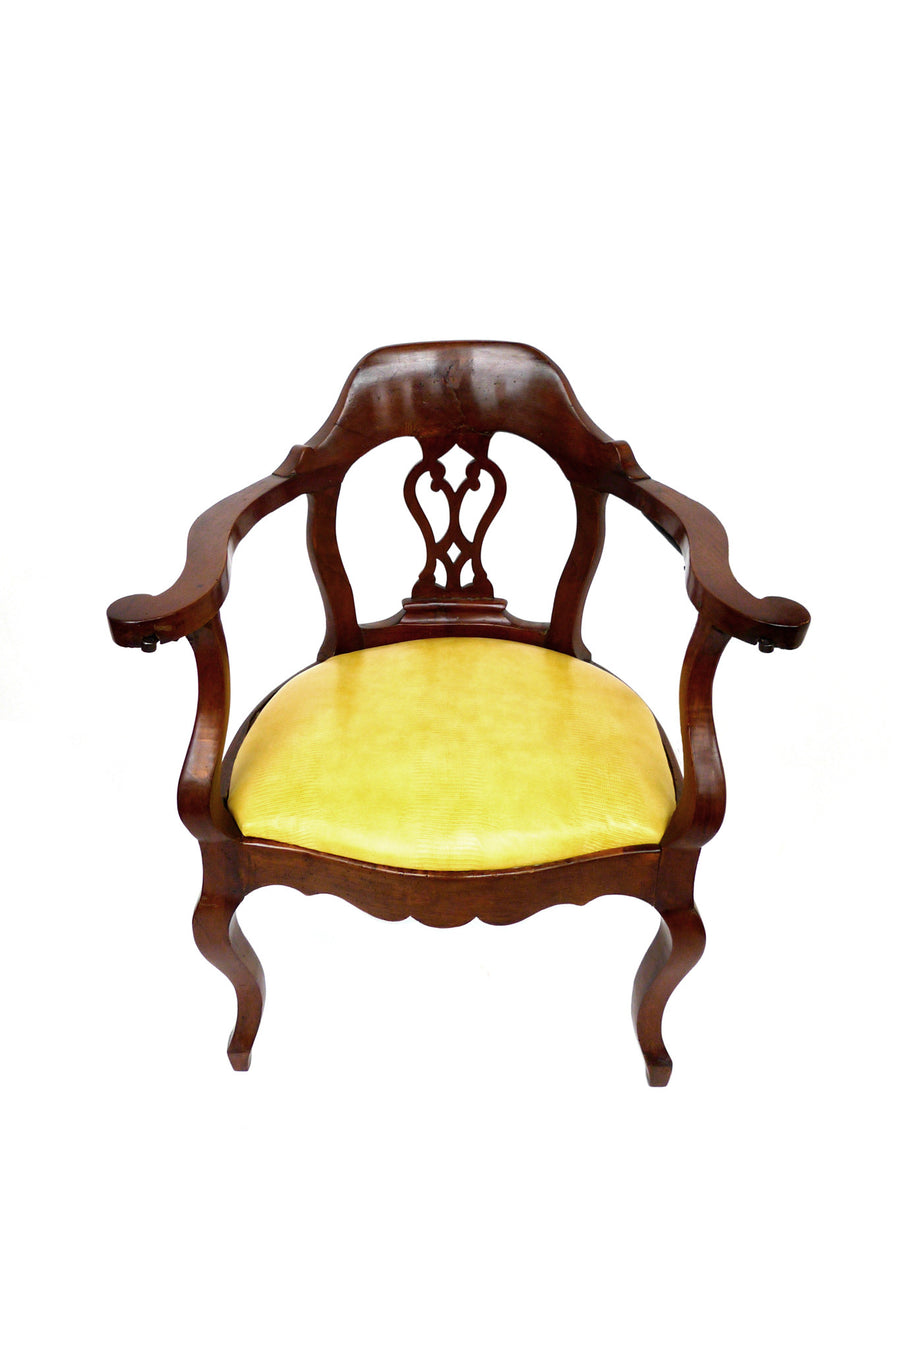 French Empire Mahogany Armchair in Yellow Snakeprint Leather from Edelman